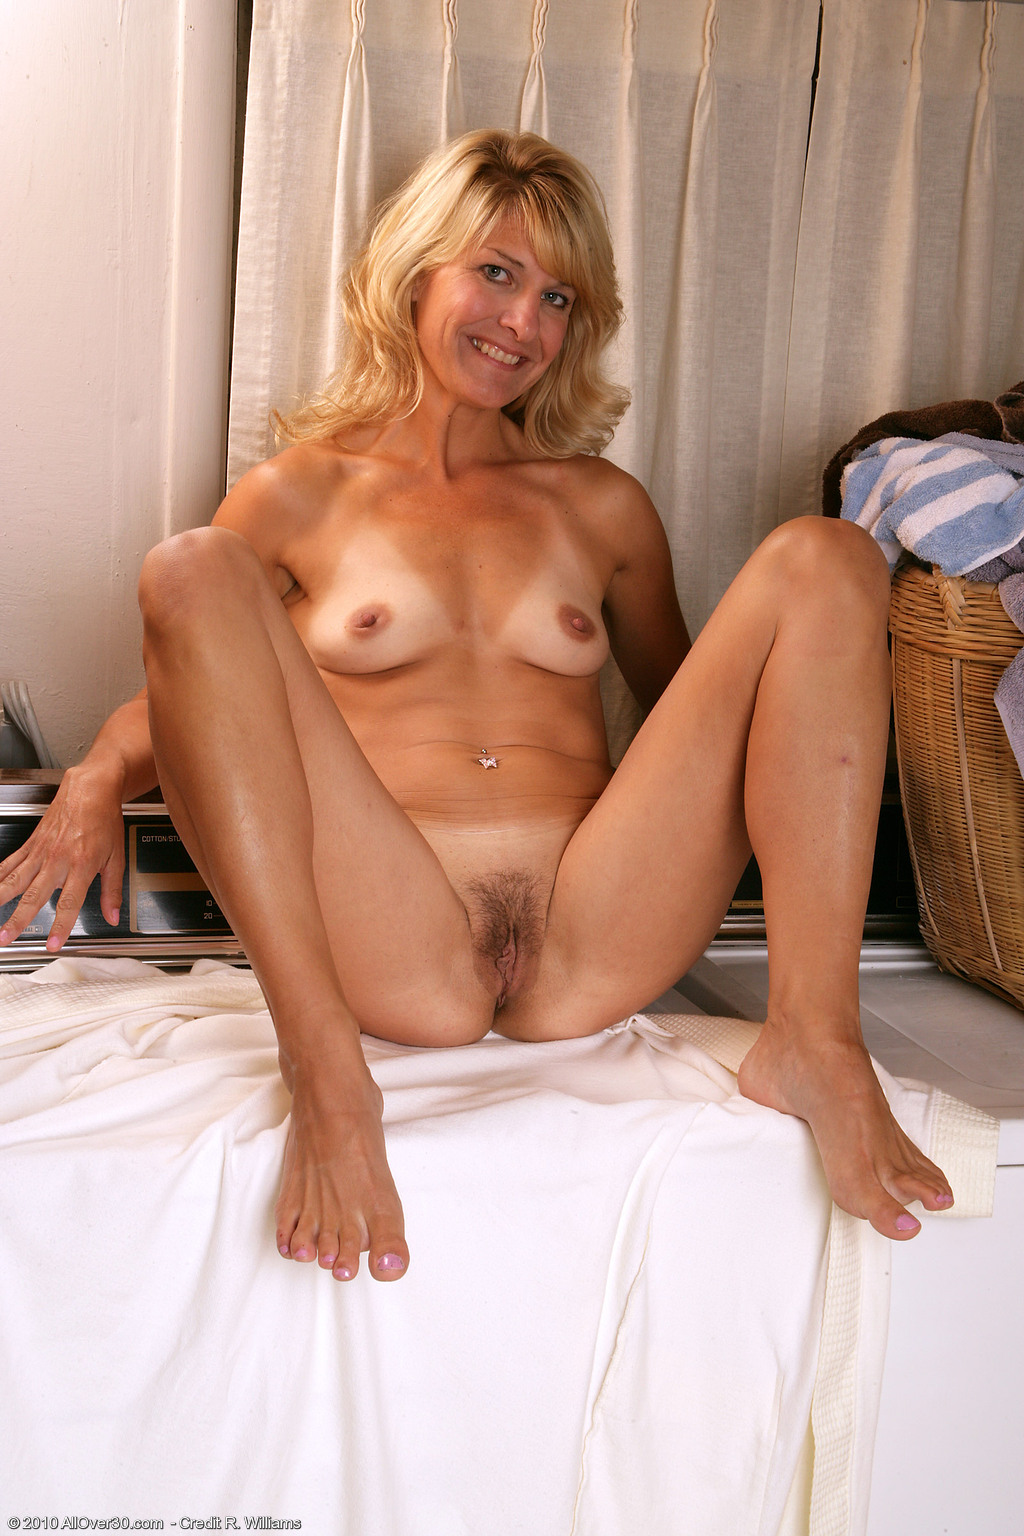 free amateur hot lady videos